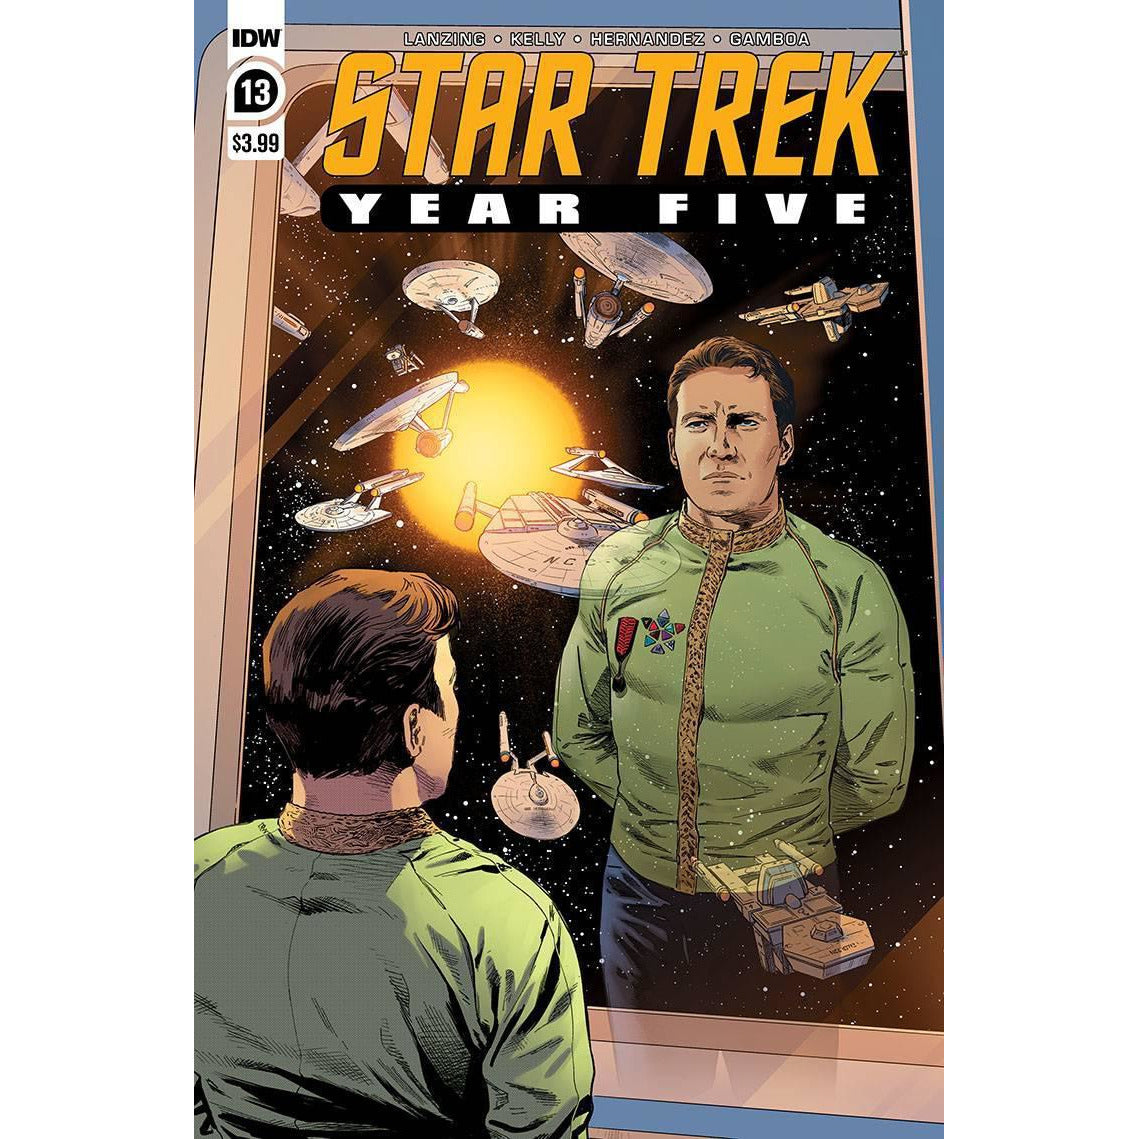 STAR TREK YEAR FIVE #13 - THOMPSON COVER A